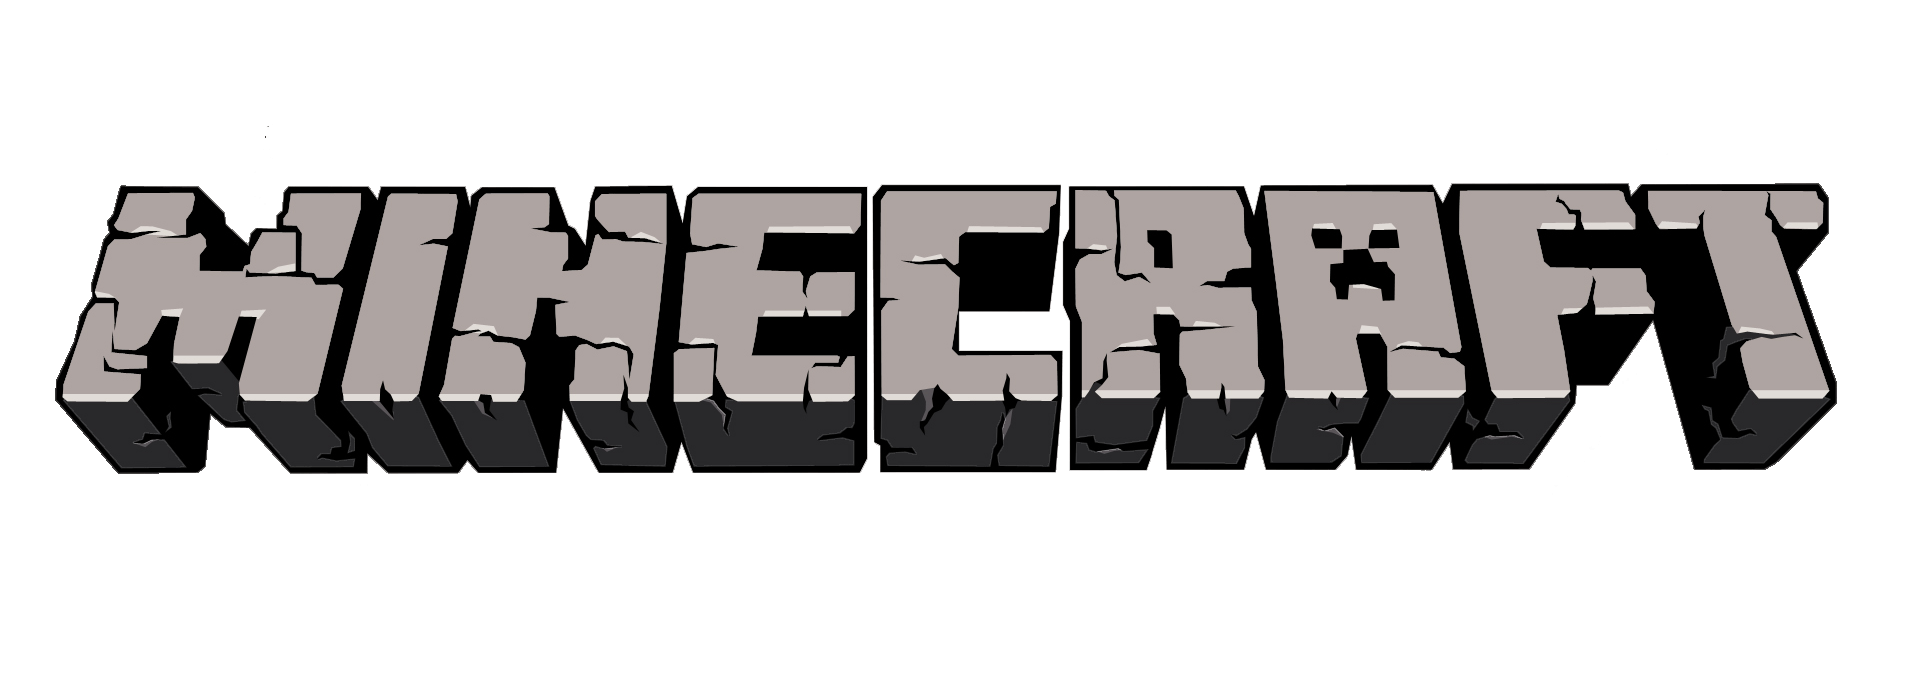 Minecraft png download. Images free logo